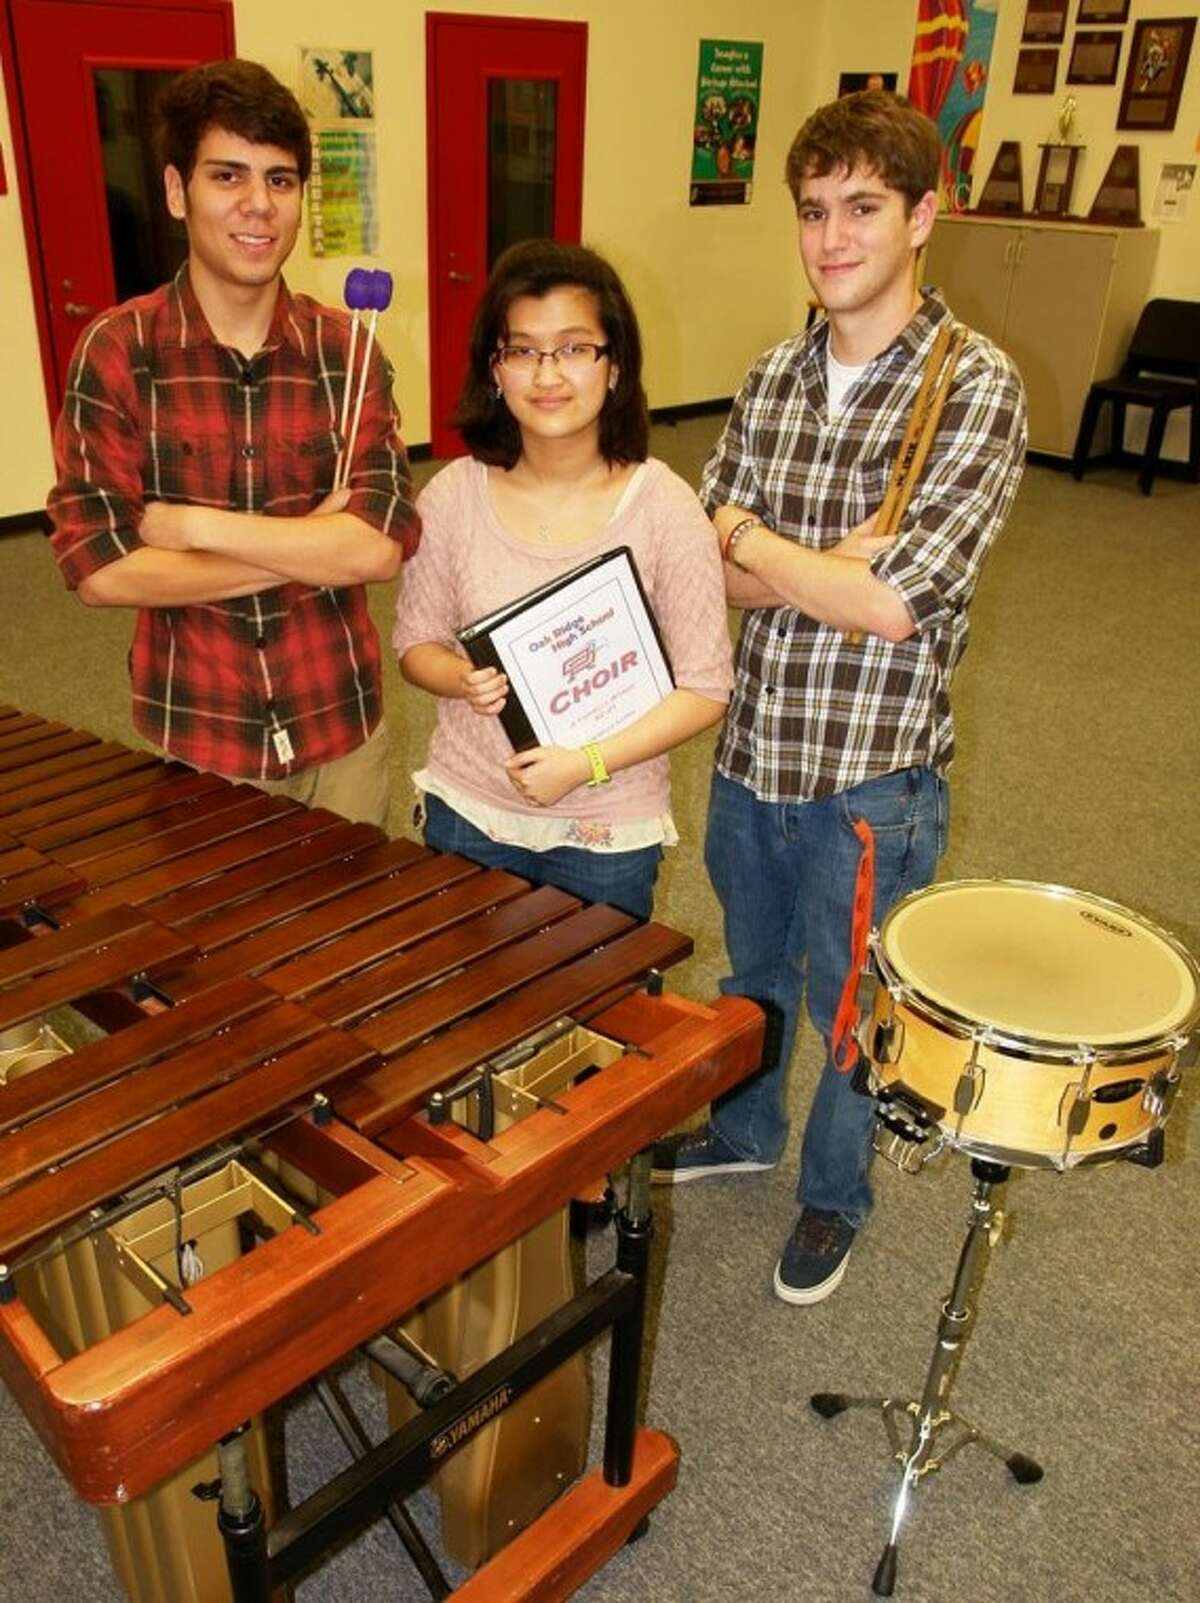 Oak Ridge High School is home to three musicians who earned a spot in the All-State Band and Choir. Pictured, from left, are Diego Reyes, percussionist; Liezelle Lopez, Soprano 2; and Nico Gonzalez, percussionist.